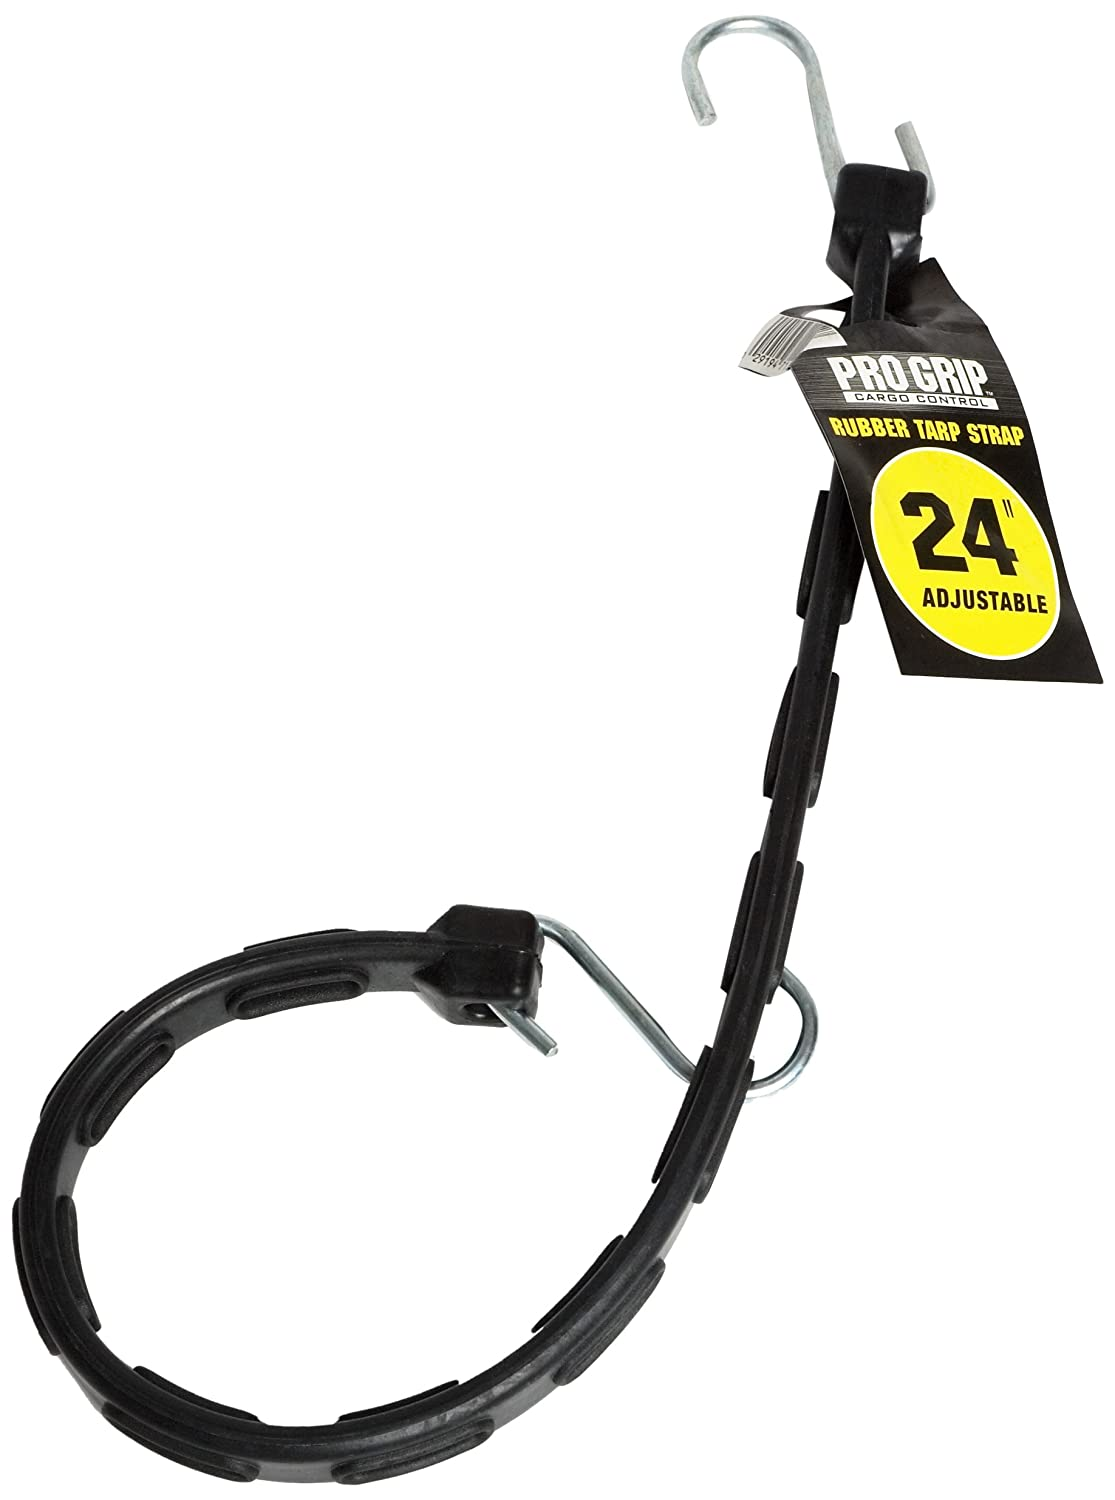 PROGRIP 713600 Natural Rubber Adjustable Tarp Strap with S Hooks 36 Length